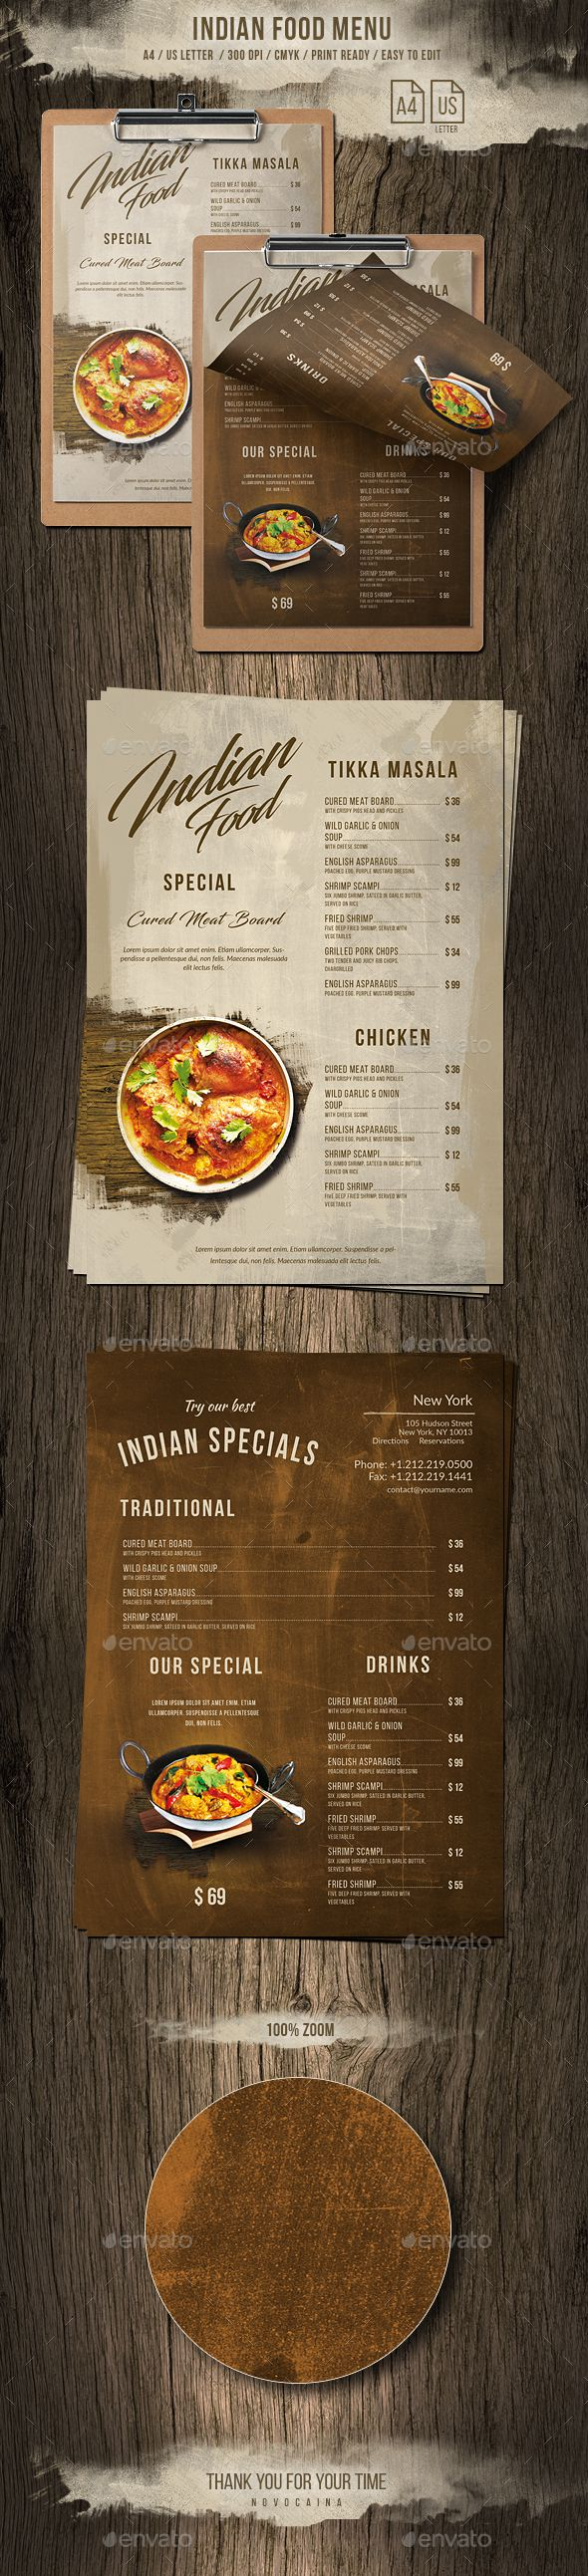 Indian A4 & US Letter Single Page Food Menu - Food Menus Print Templates Download here : https://graphicriver.net/item/indian-a4-us-letter-single-page-food-menu/20691932?s_rank=17&ref=Al-fatih #food menu #food menus template #flyer food #design #promotion #template #print templates #restaurant  #bifold #trifold #premium design #table tent